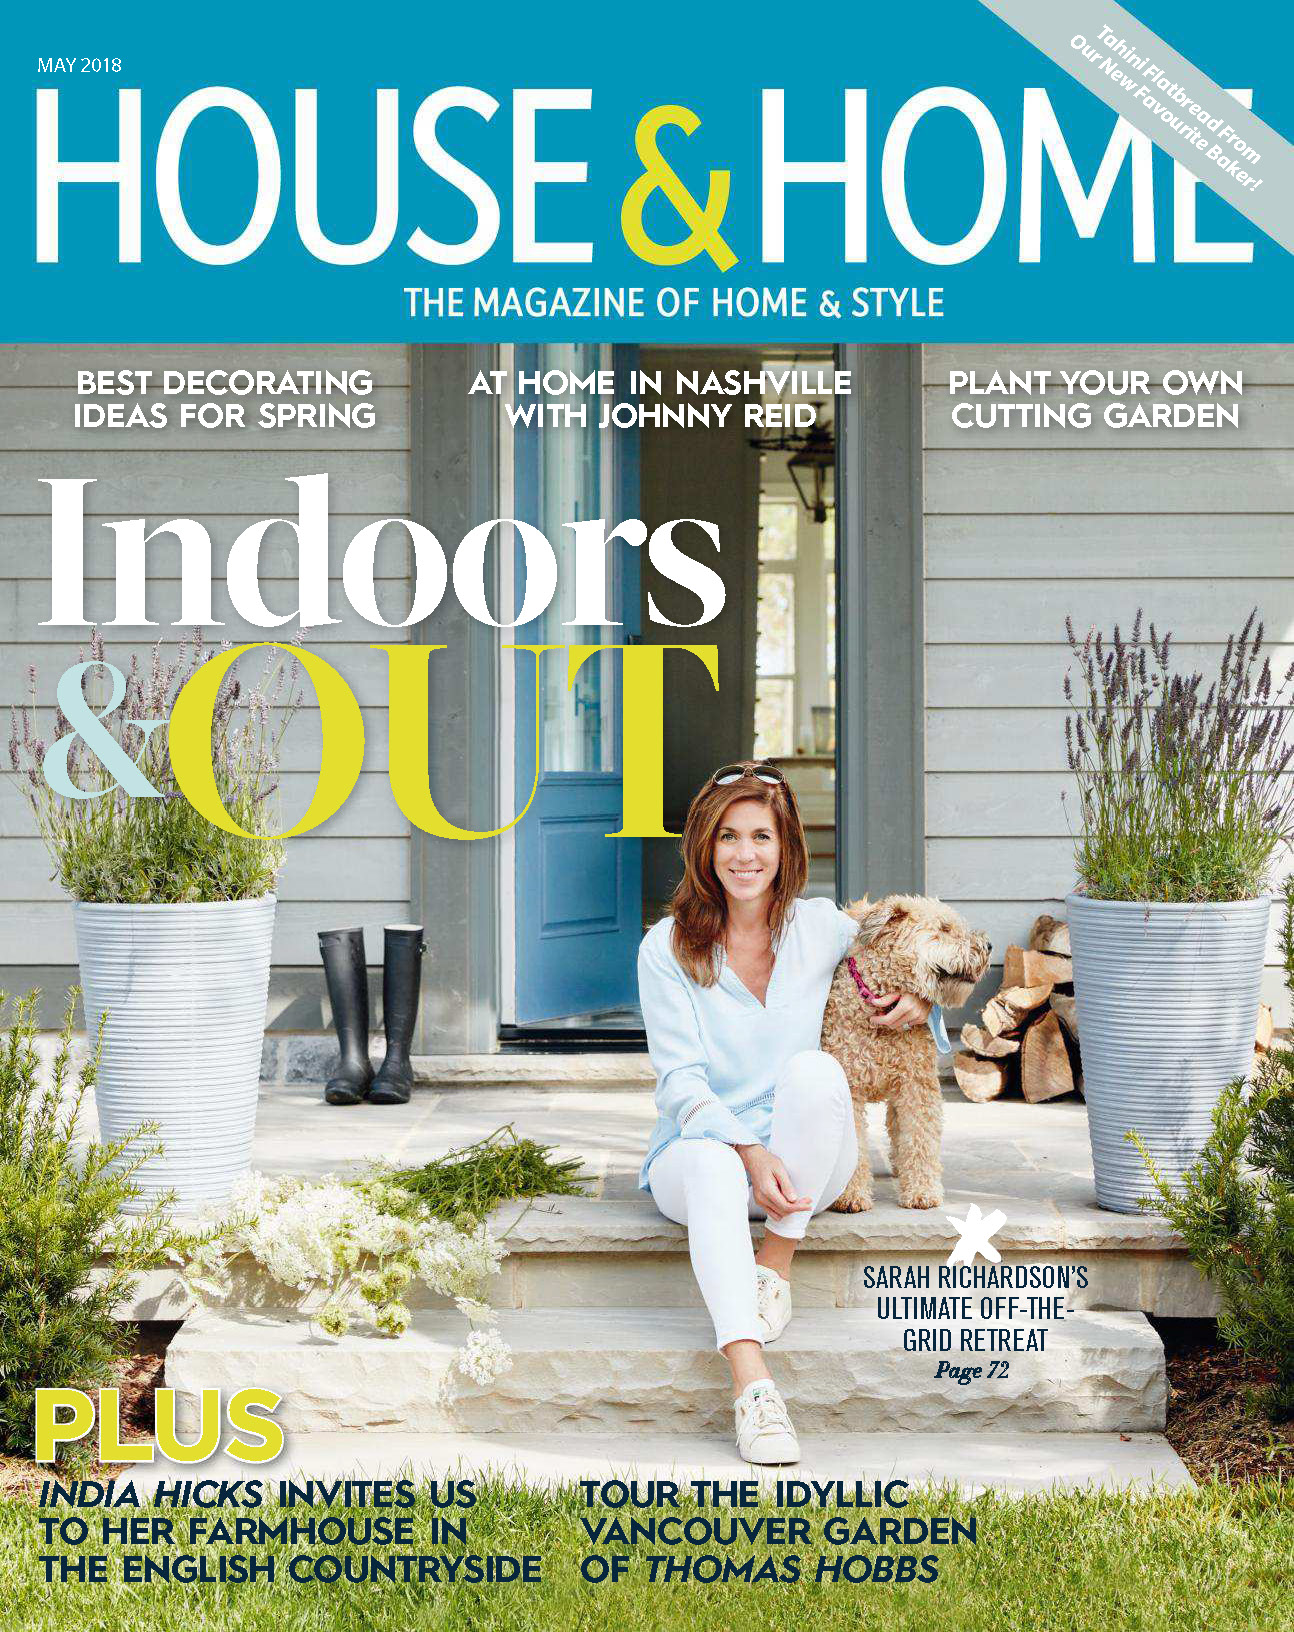 House & Home May 2018